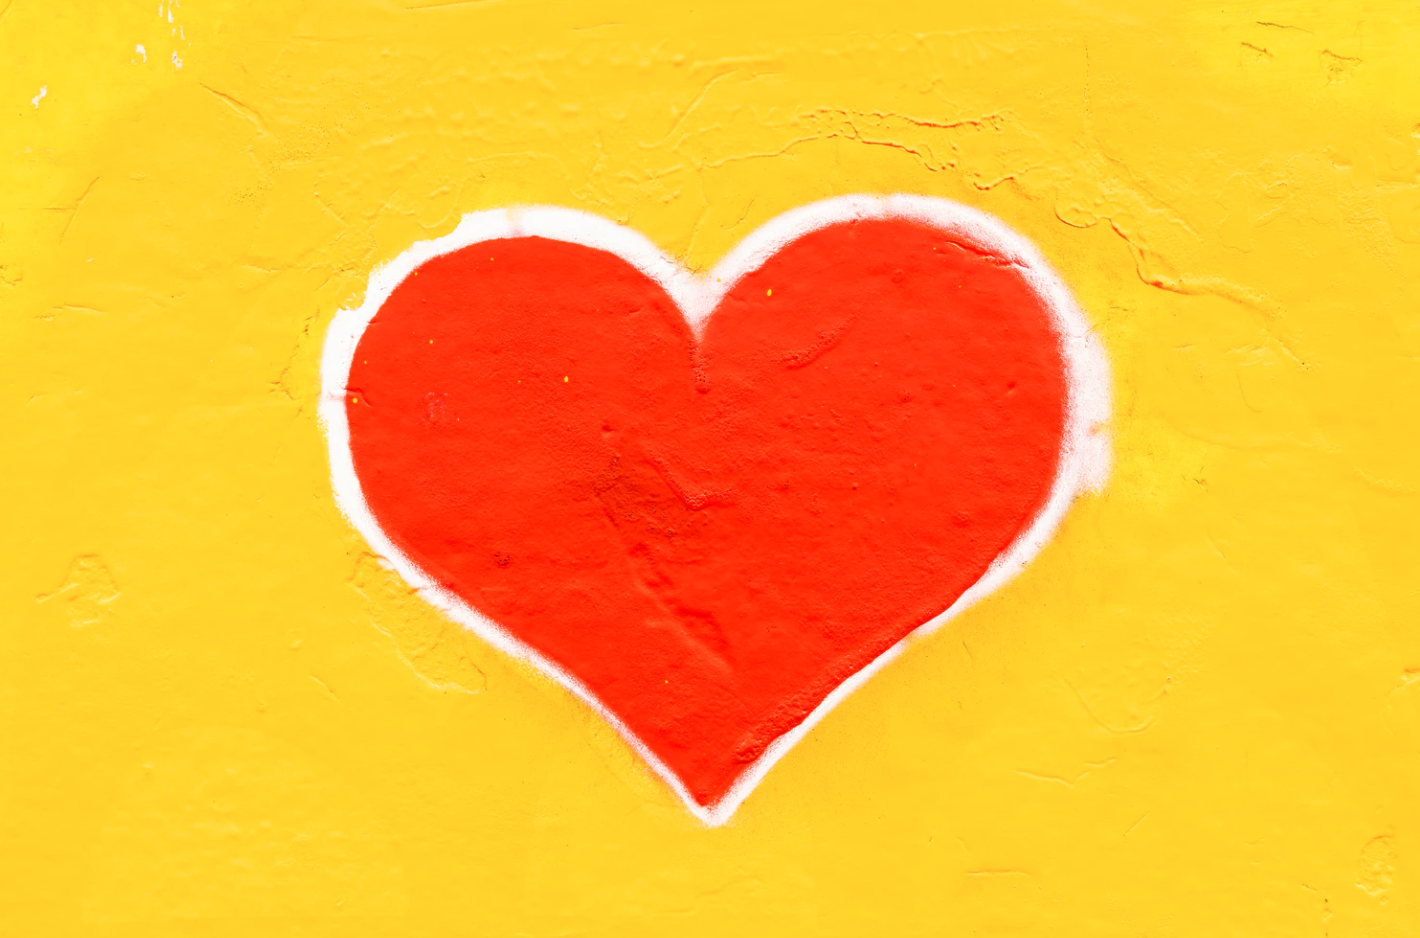 red heart on yellow